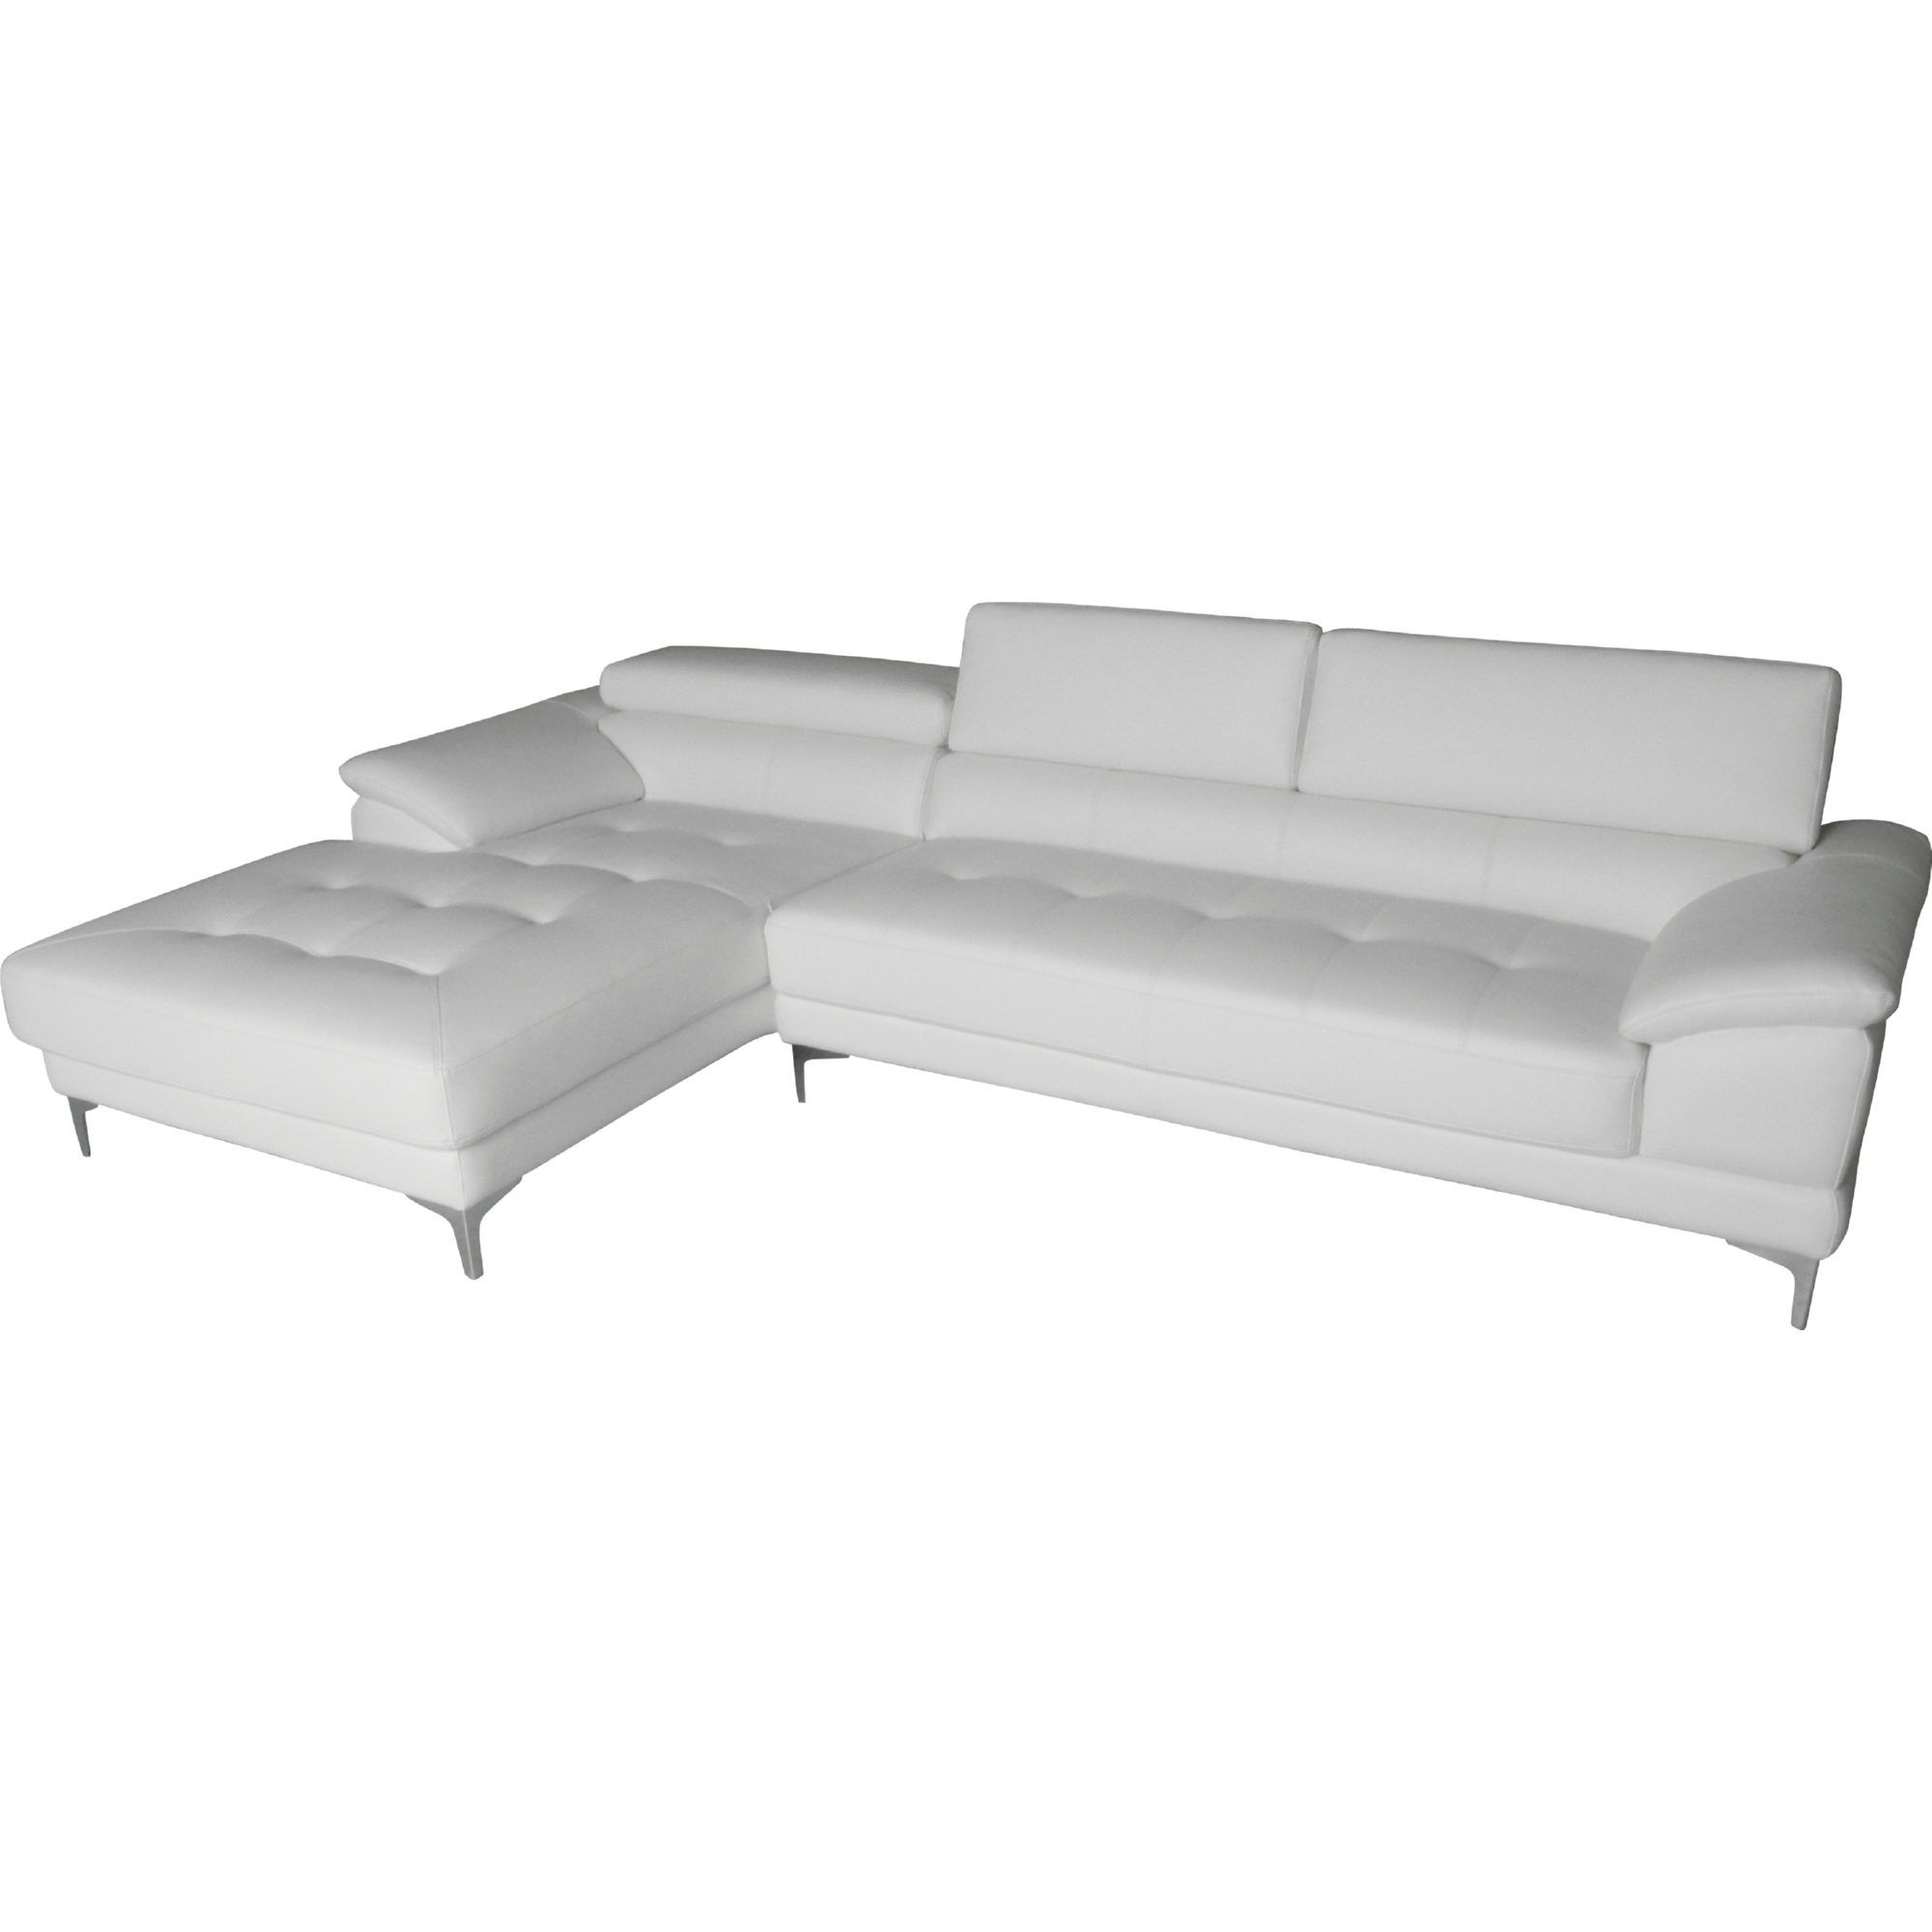 Whiteline Imports SL1342P WHT Monroe Sectional Sofa w Chaise on